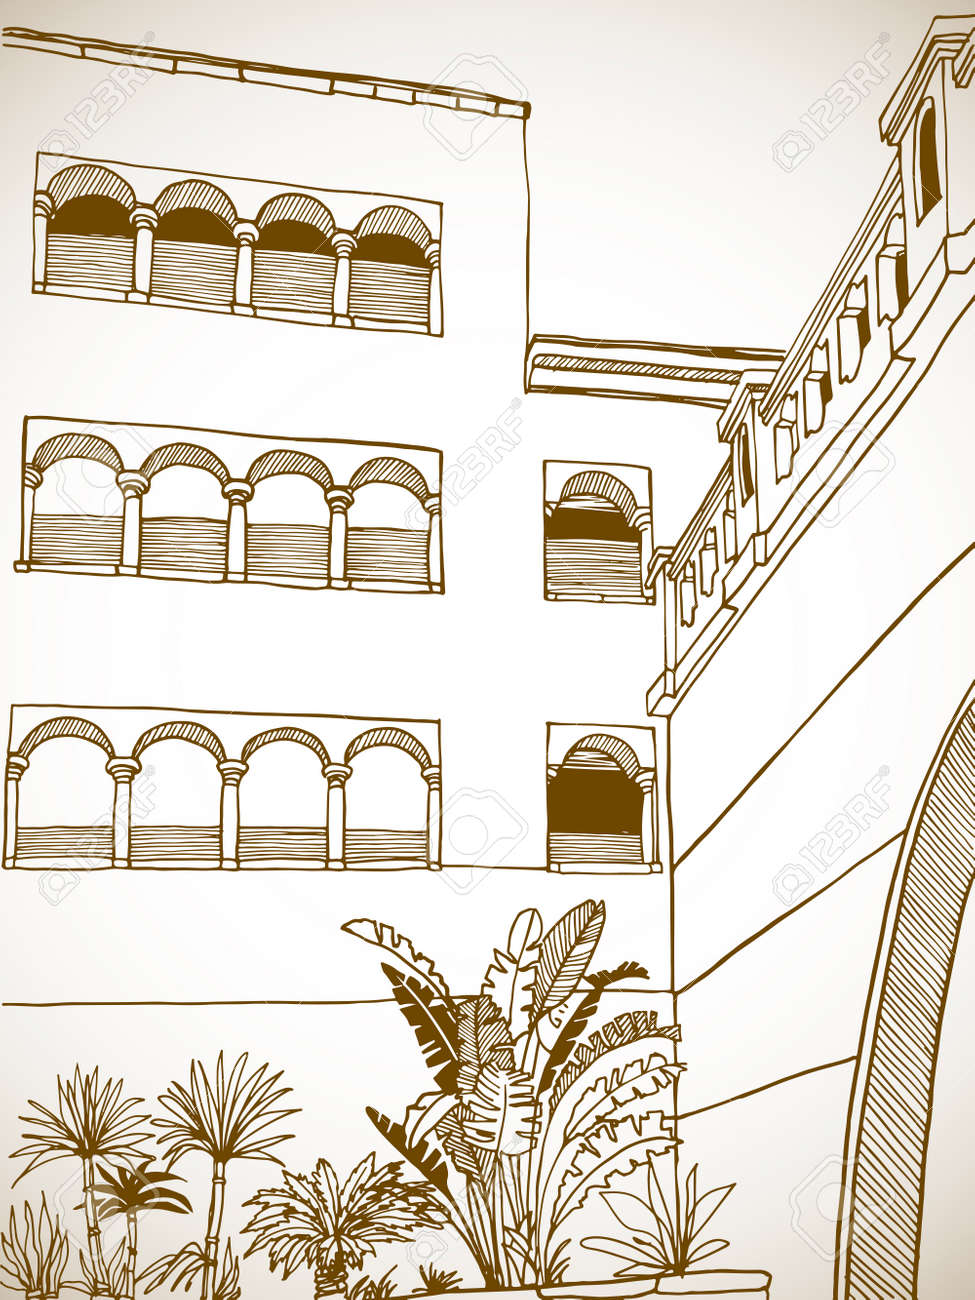 Beautiful Egypt landscape with palm trees. Hand drawn line ink sketch. Seaside holiday. Sepia Illustration on white. - 170062888